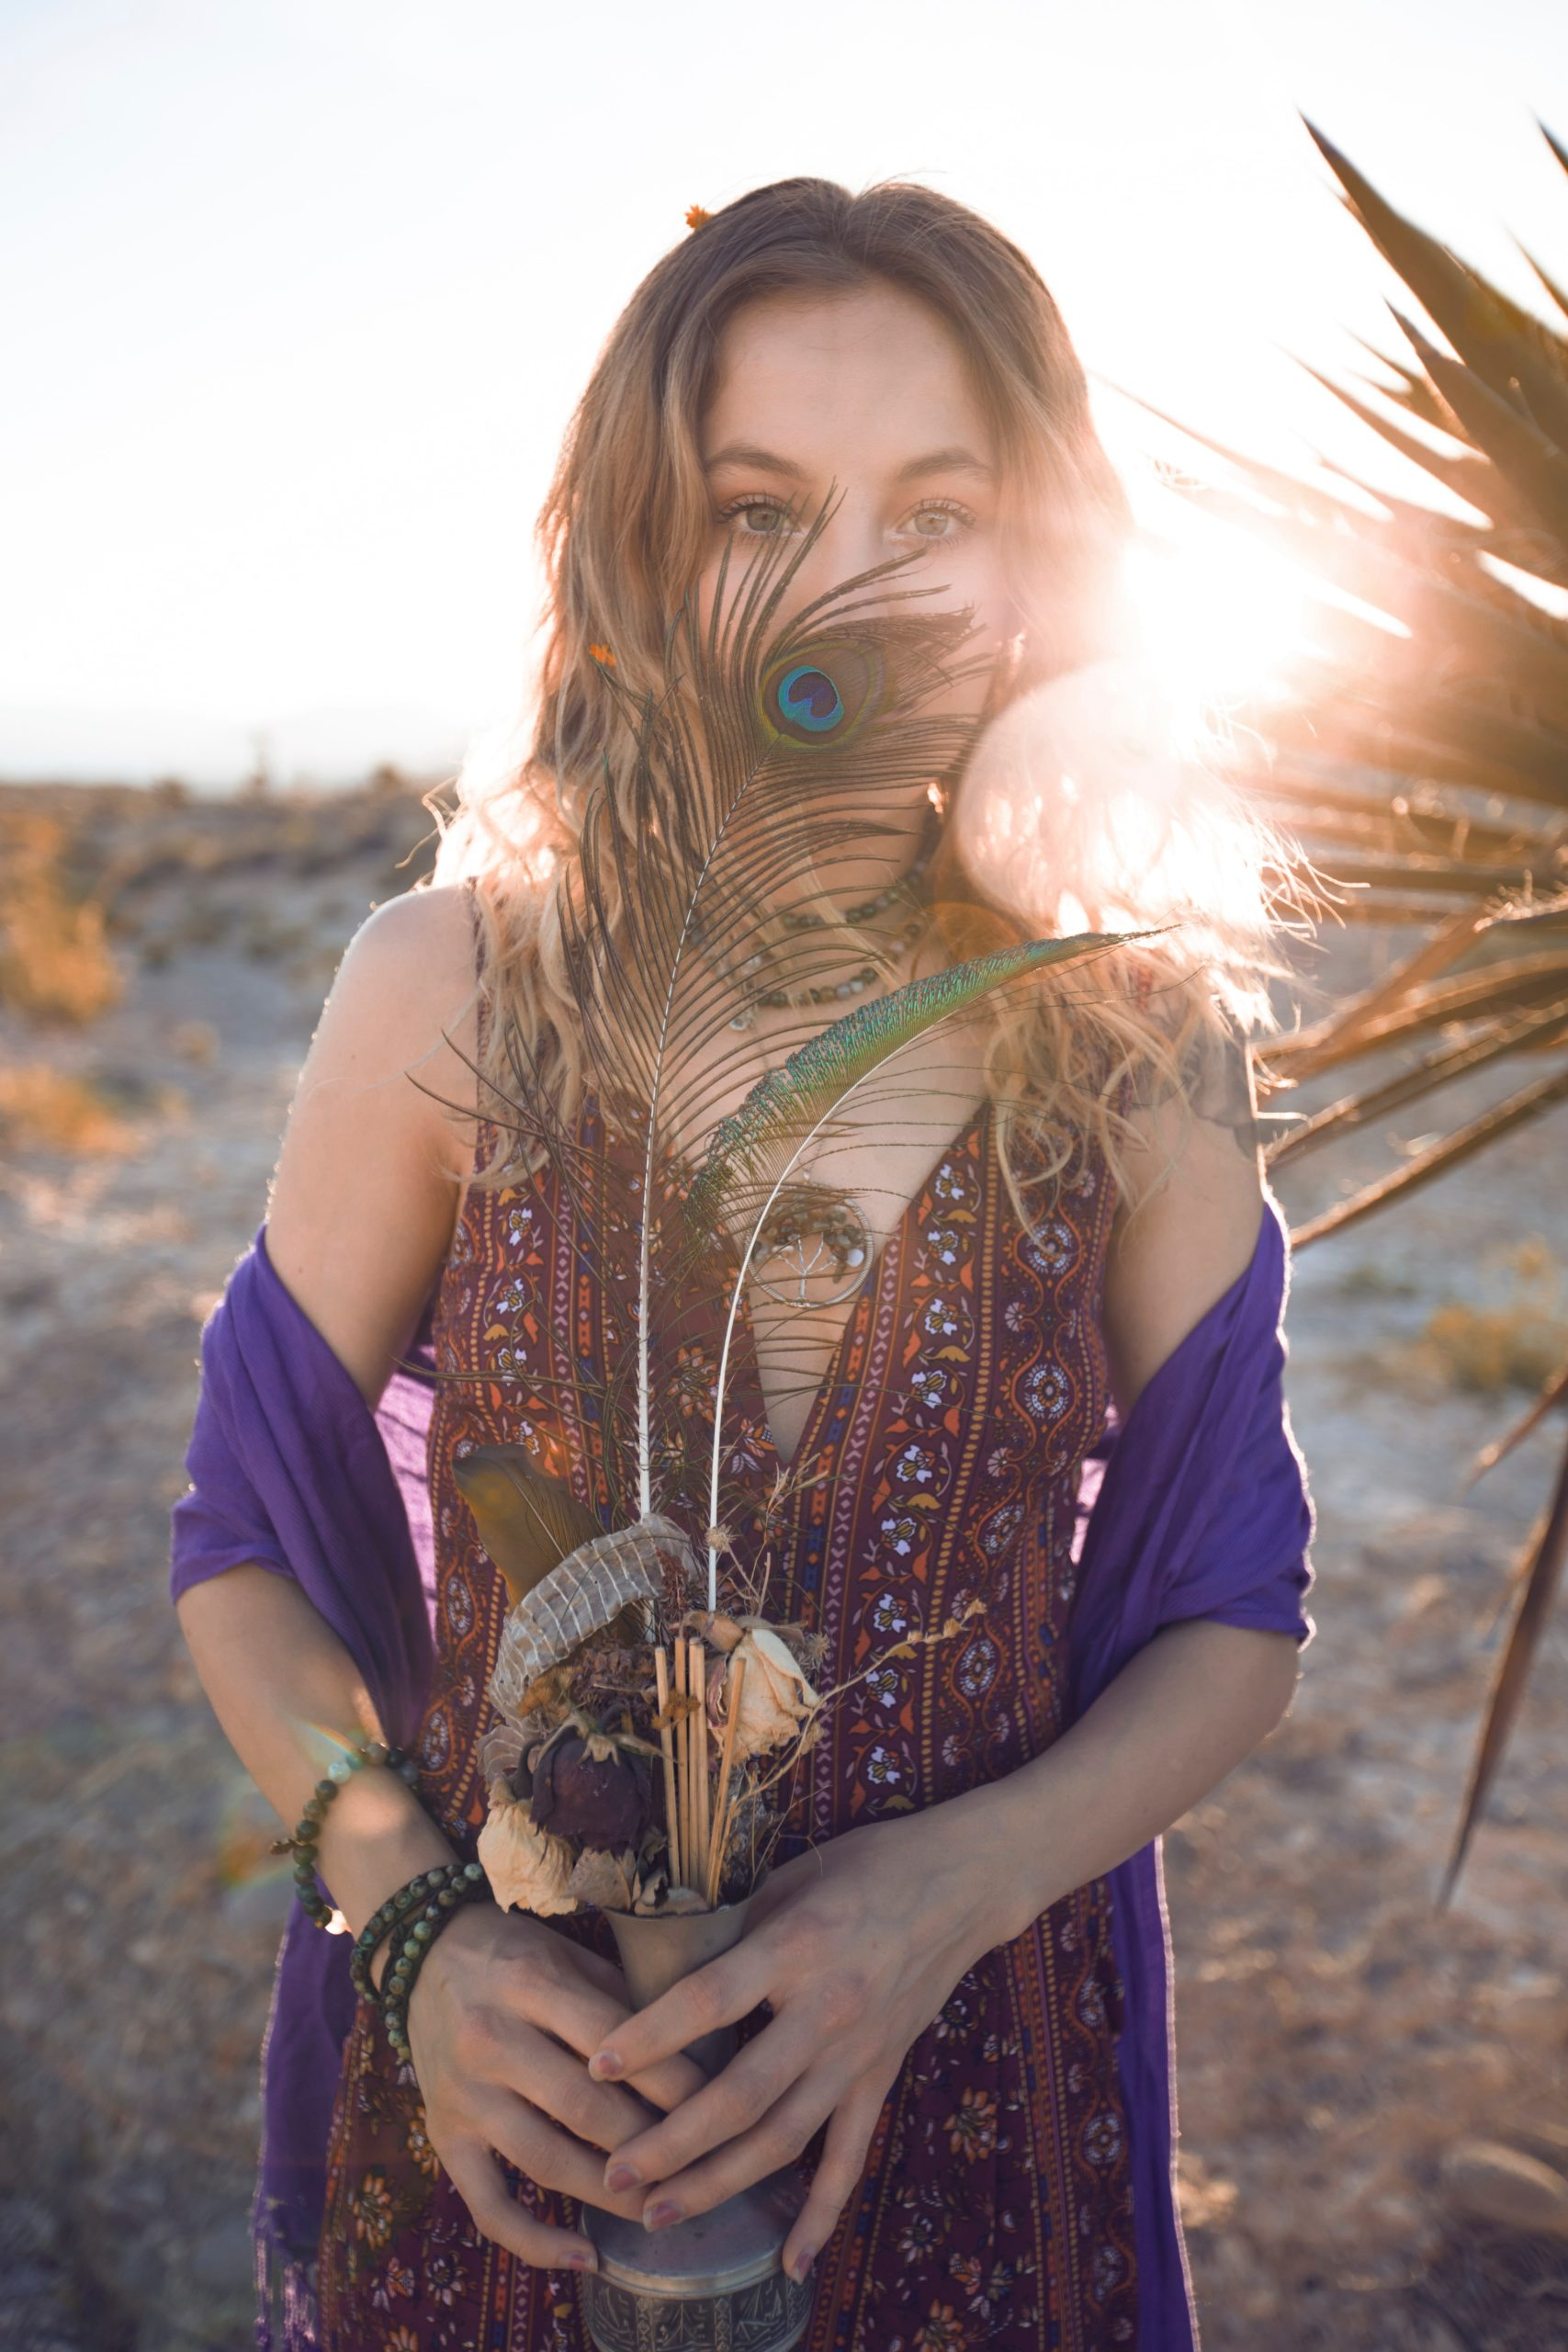 girl wearing boho outfit holding a flower